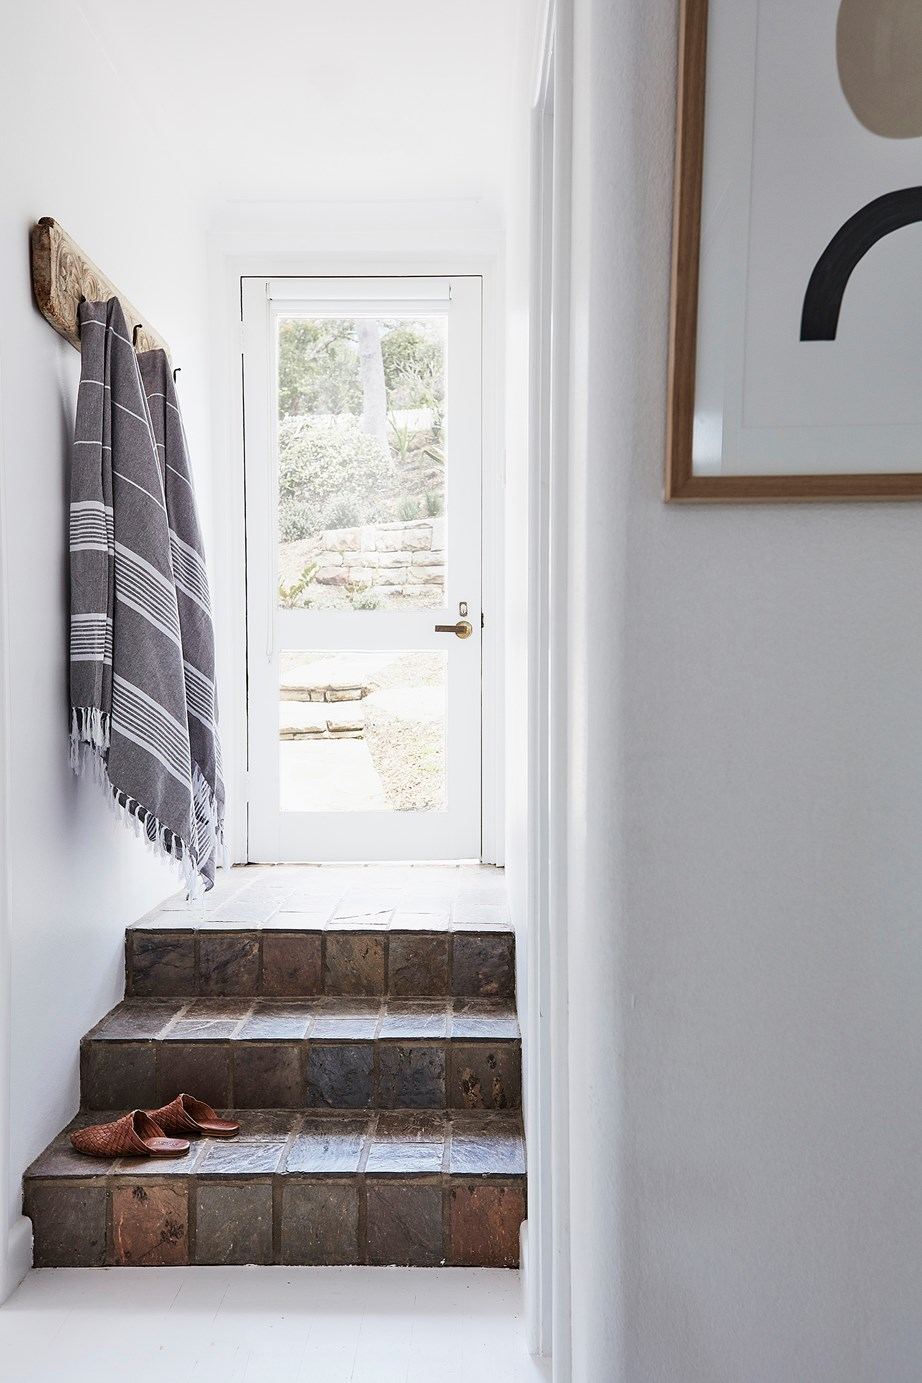 This narrow entryway would be impractical and uninviting without the simple addition of some vintage hooks to hang towels, school bags or hats.